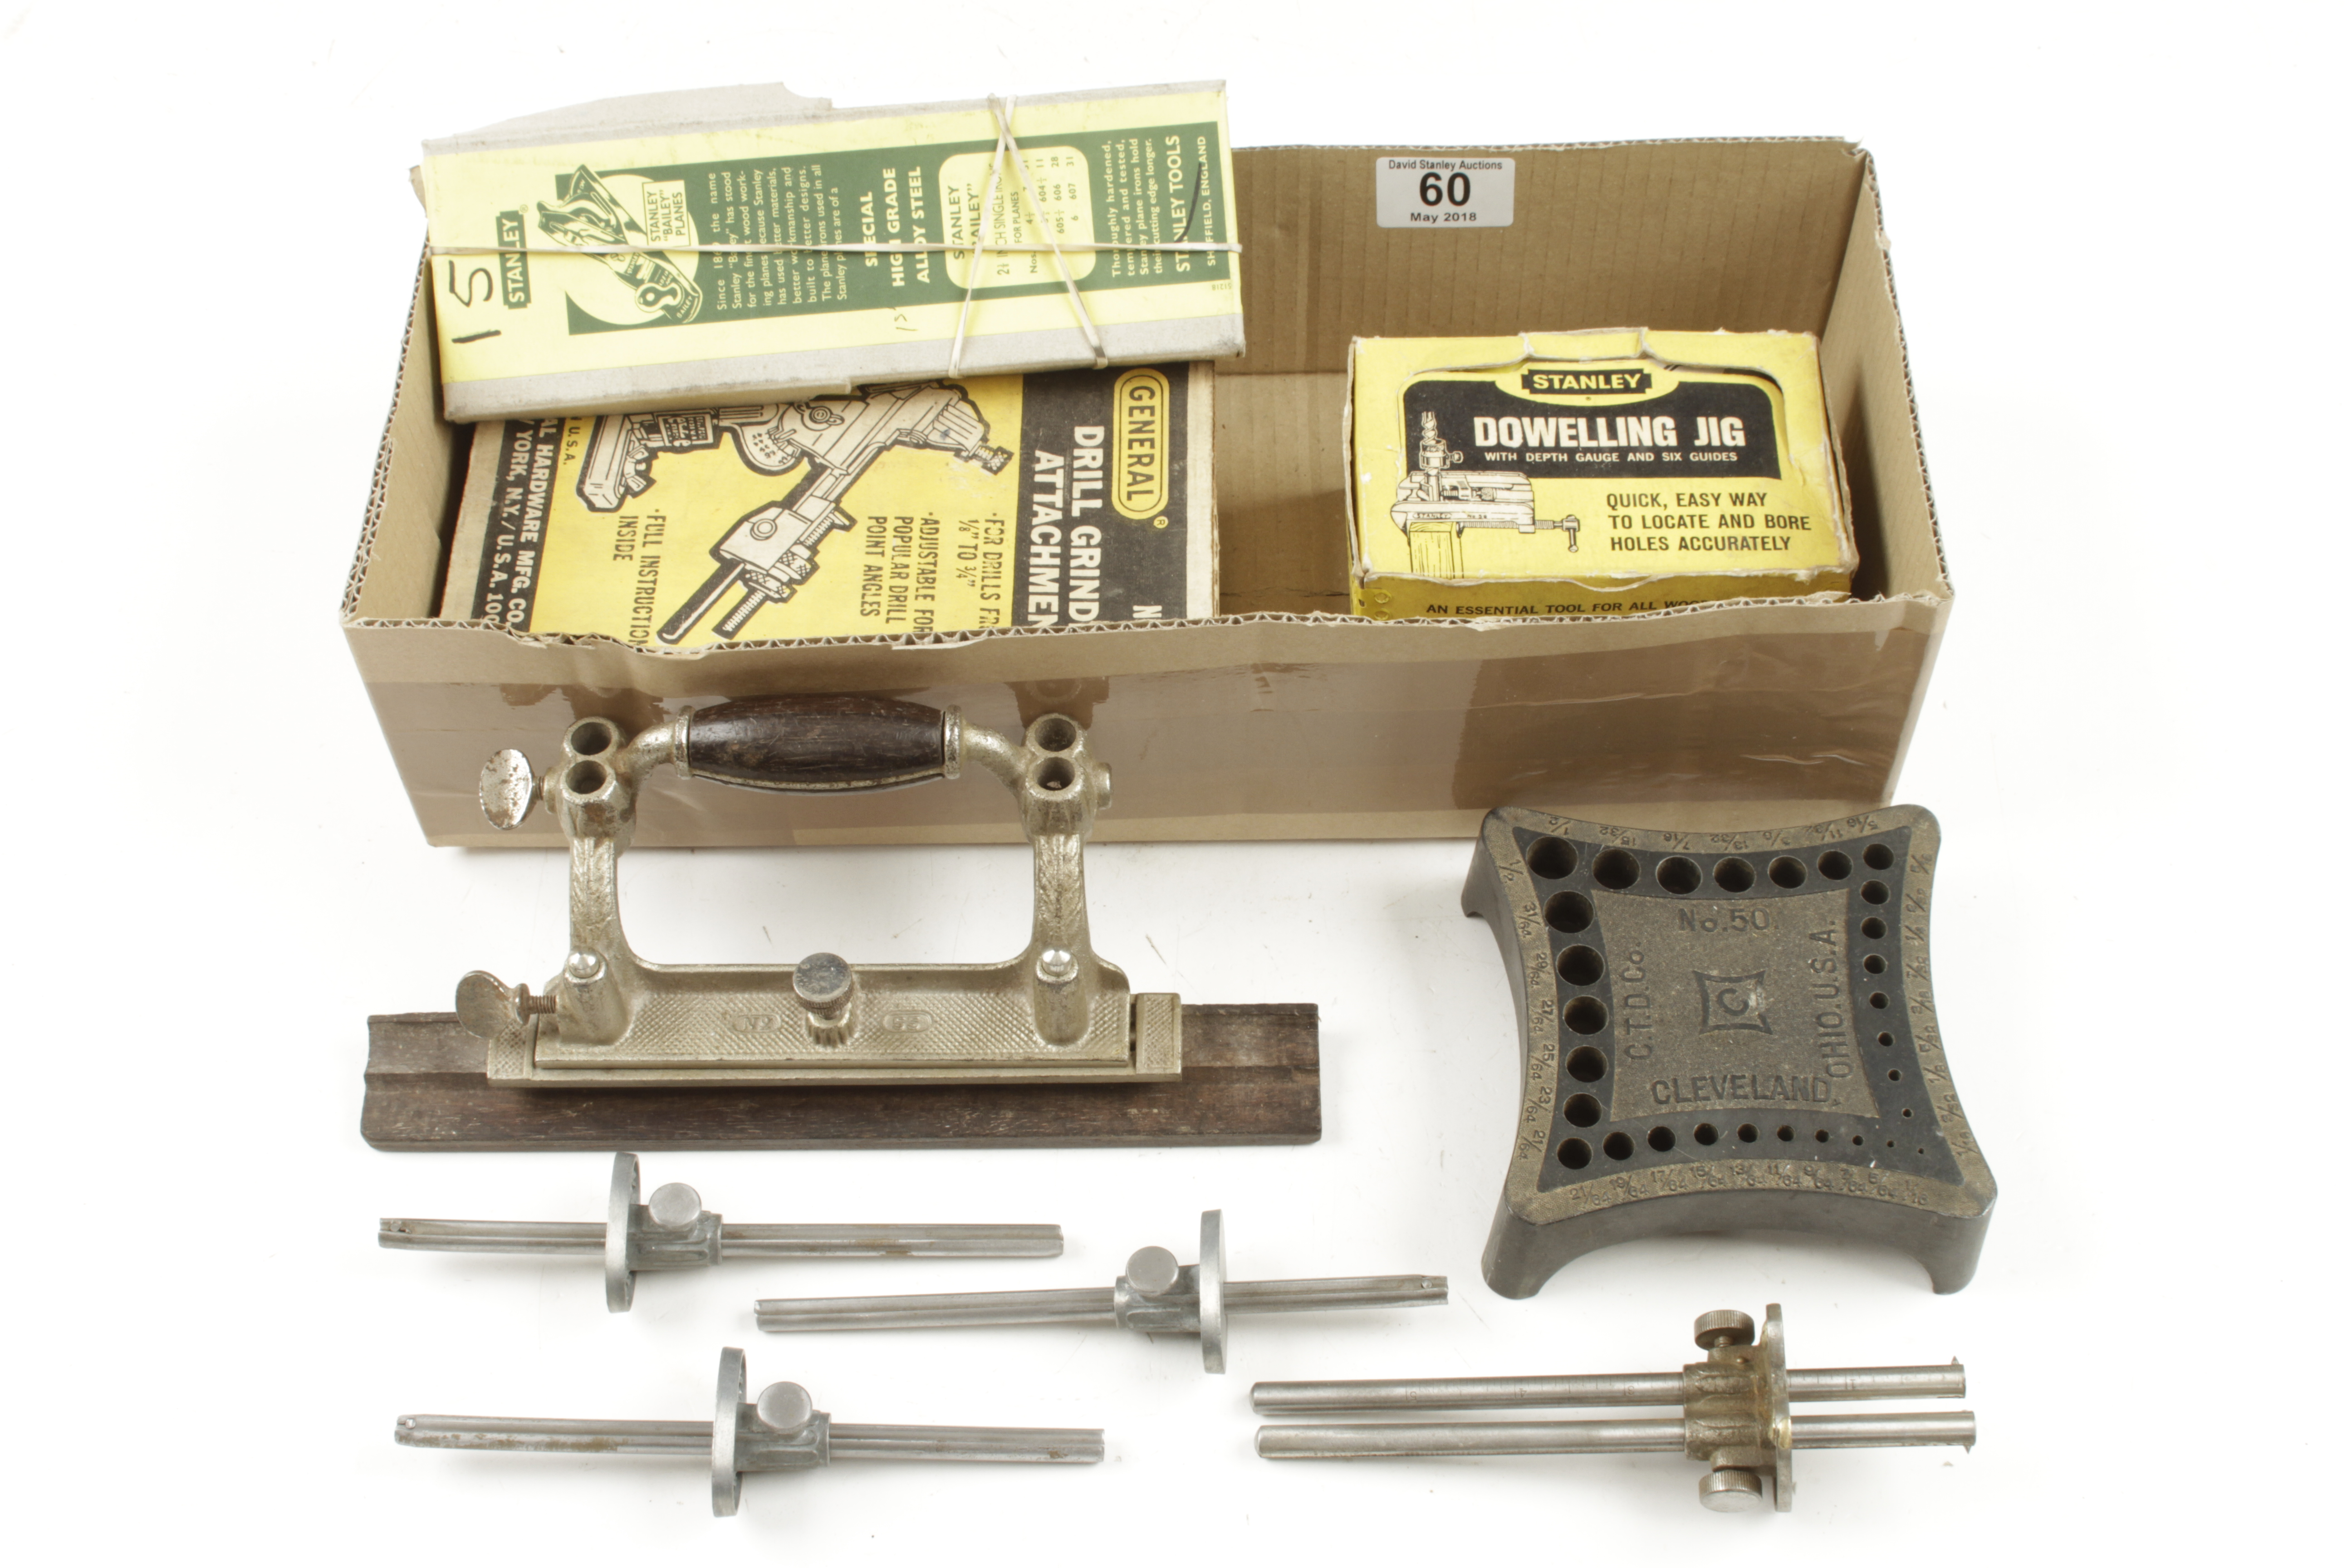 Lot 60 - A dowel jig and grinding jig in orig boxes,